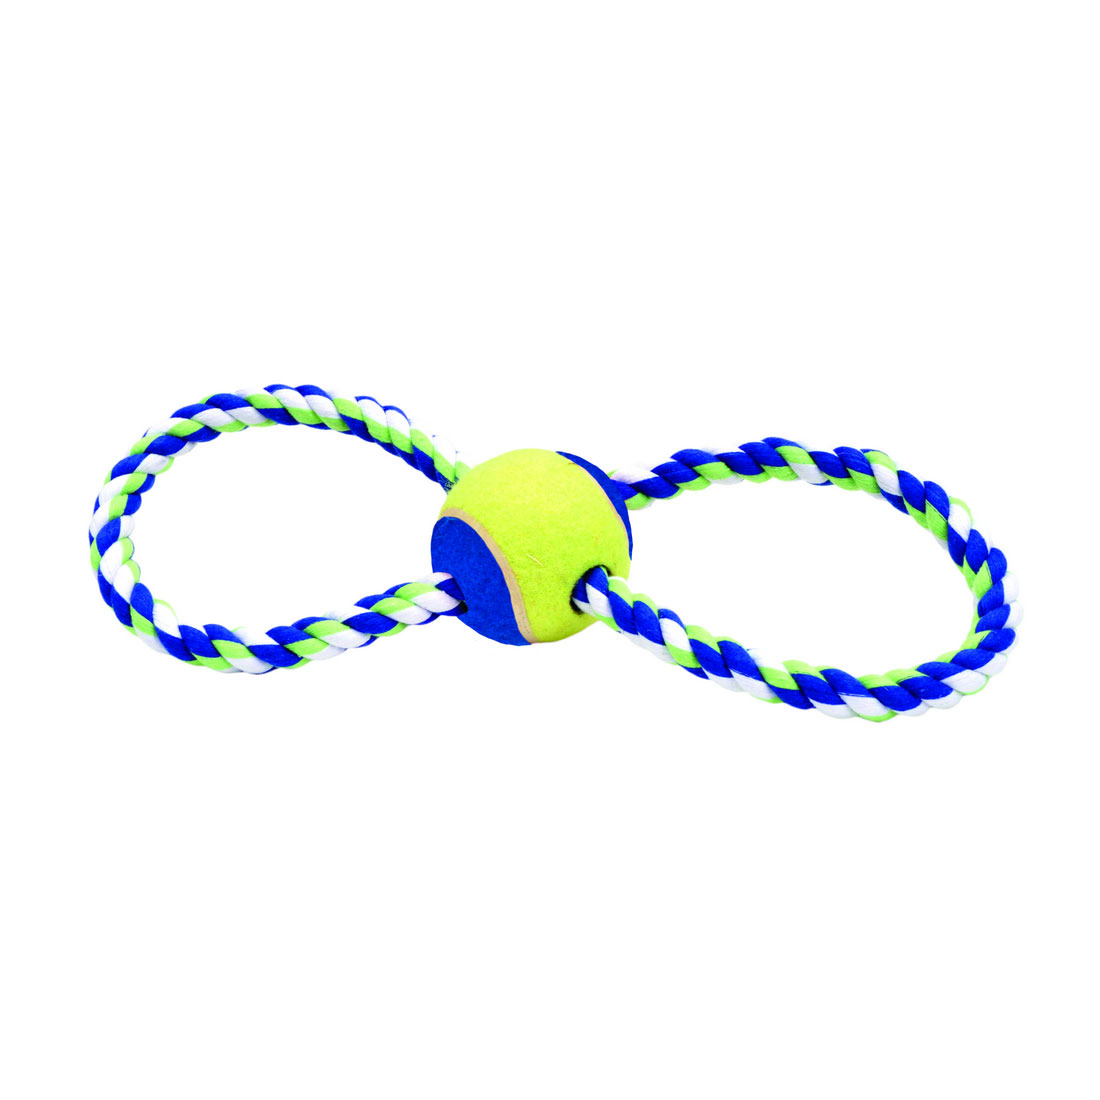 "Rascals® 12"" Figure 8 Rope Tug with Ball Dog Toy"